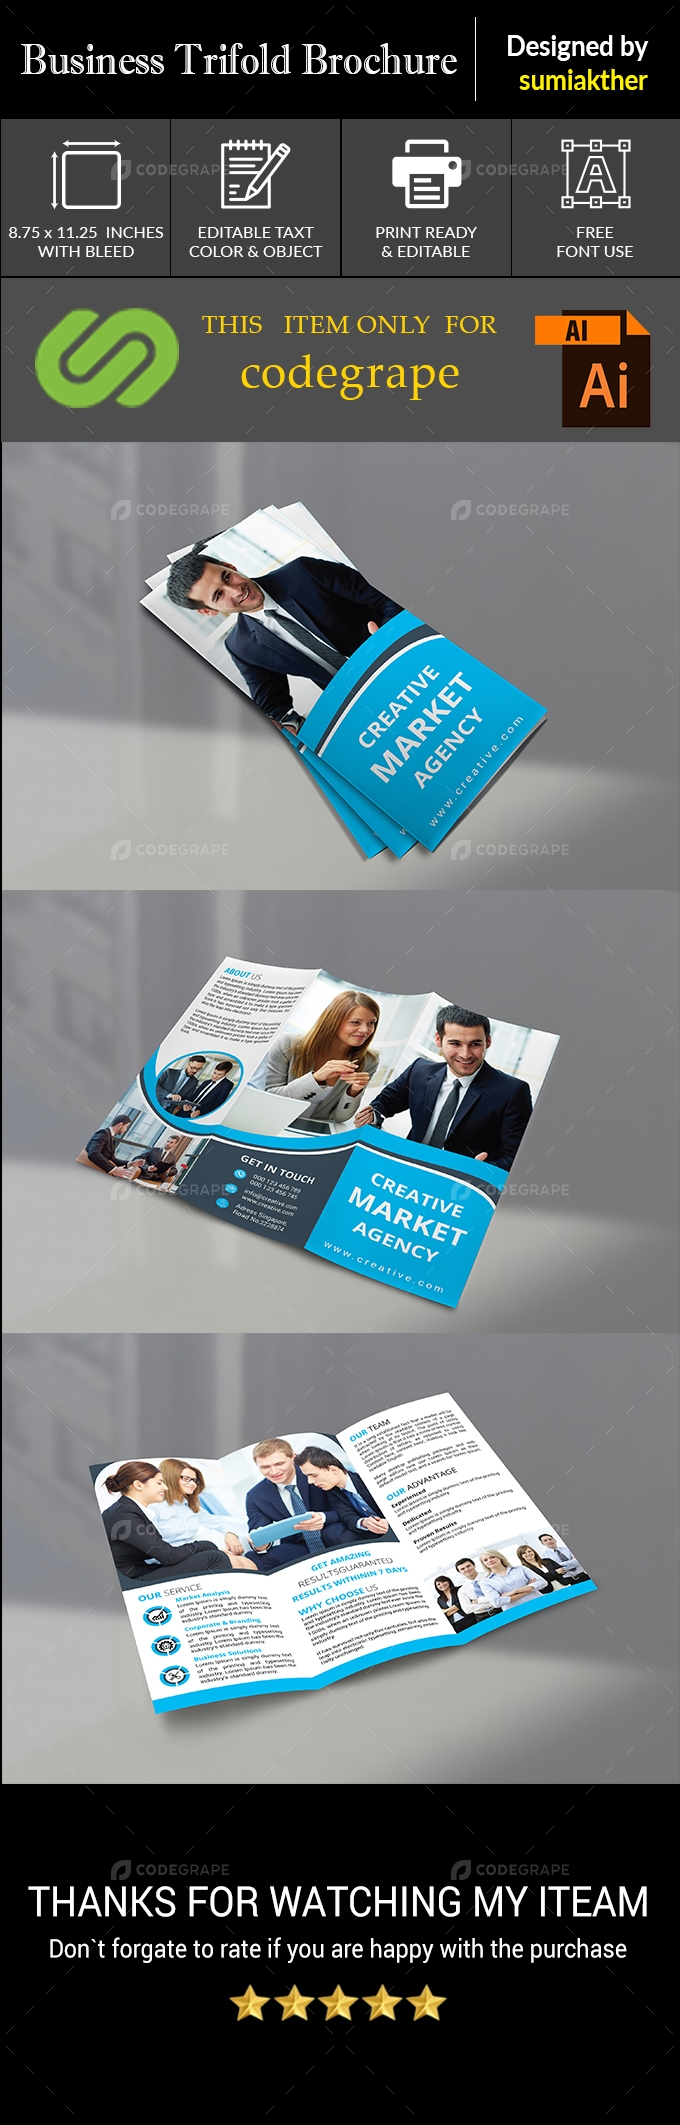 Trifold Business Brochure